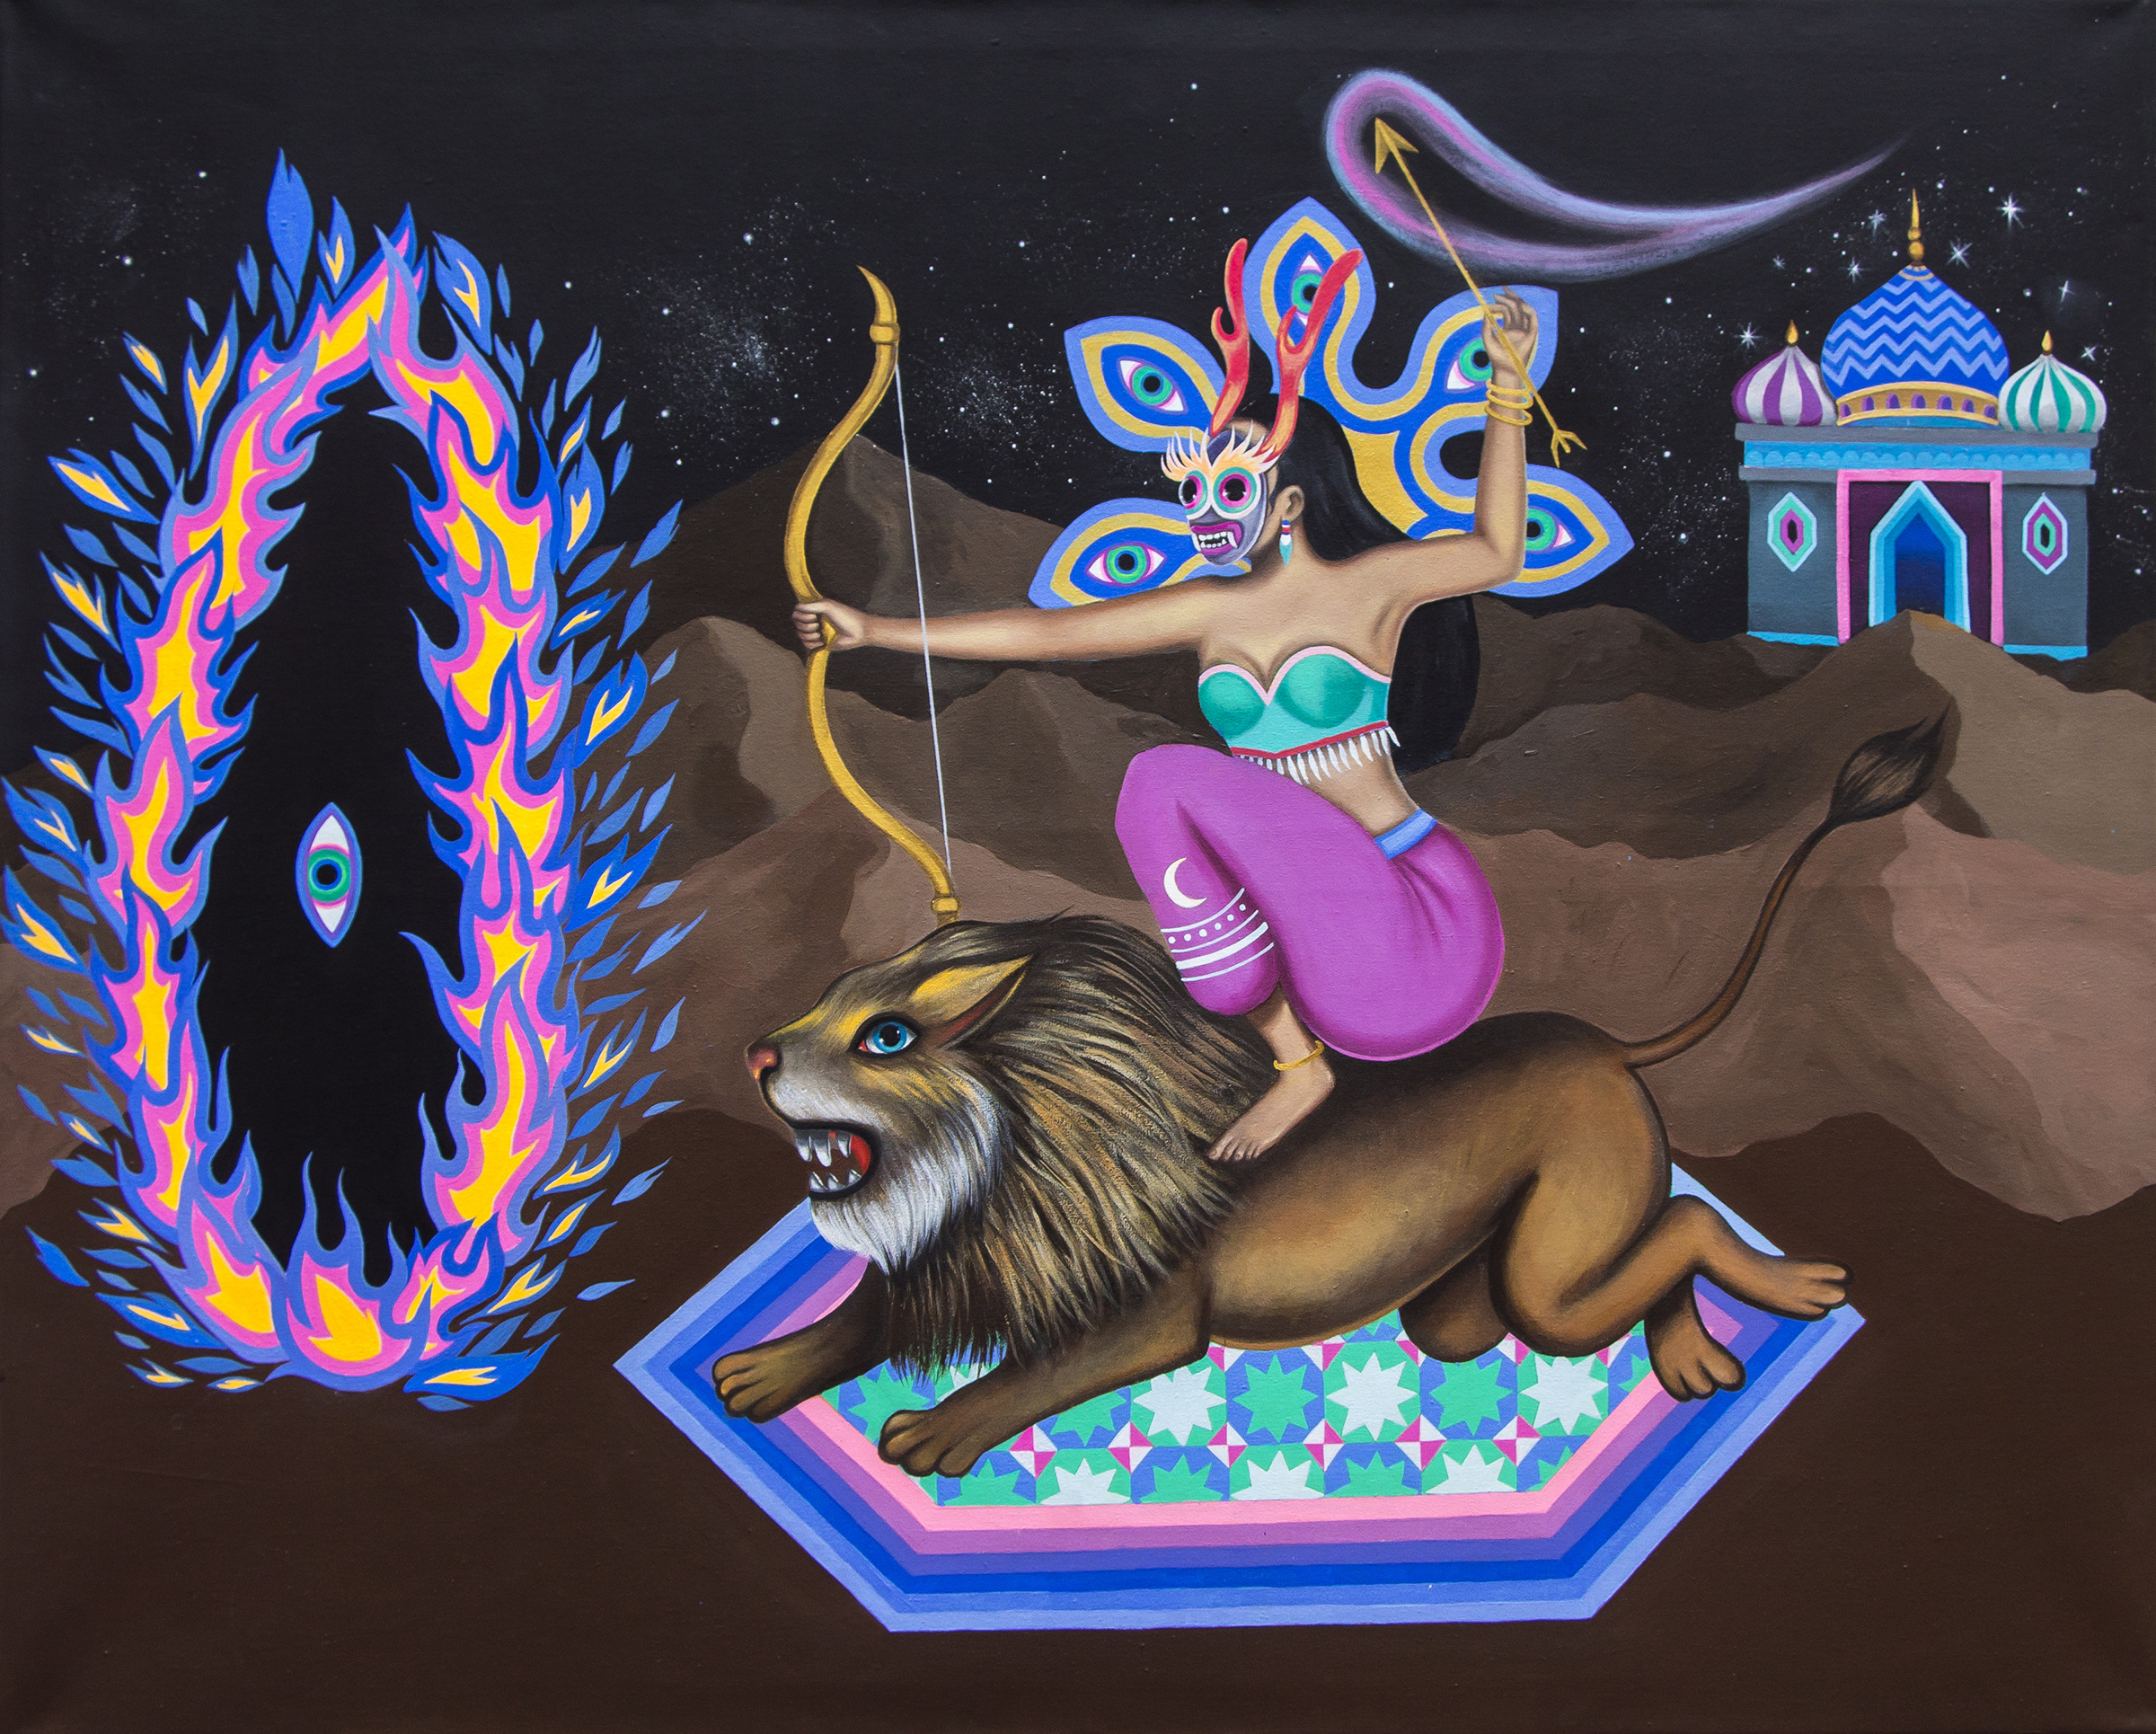 painting of a warrior woman riding a lion about to shoot an arrow into a distant floating eye surrounded by a ring of fire